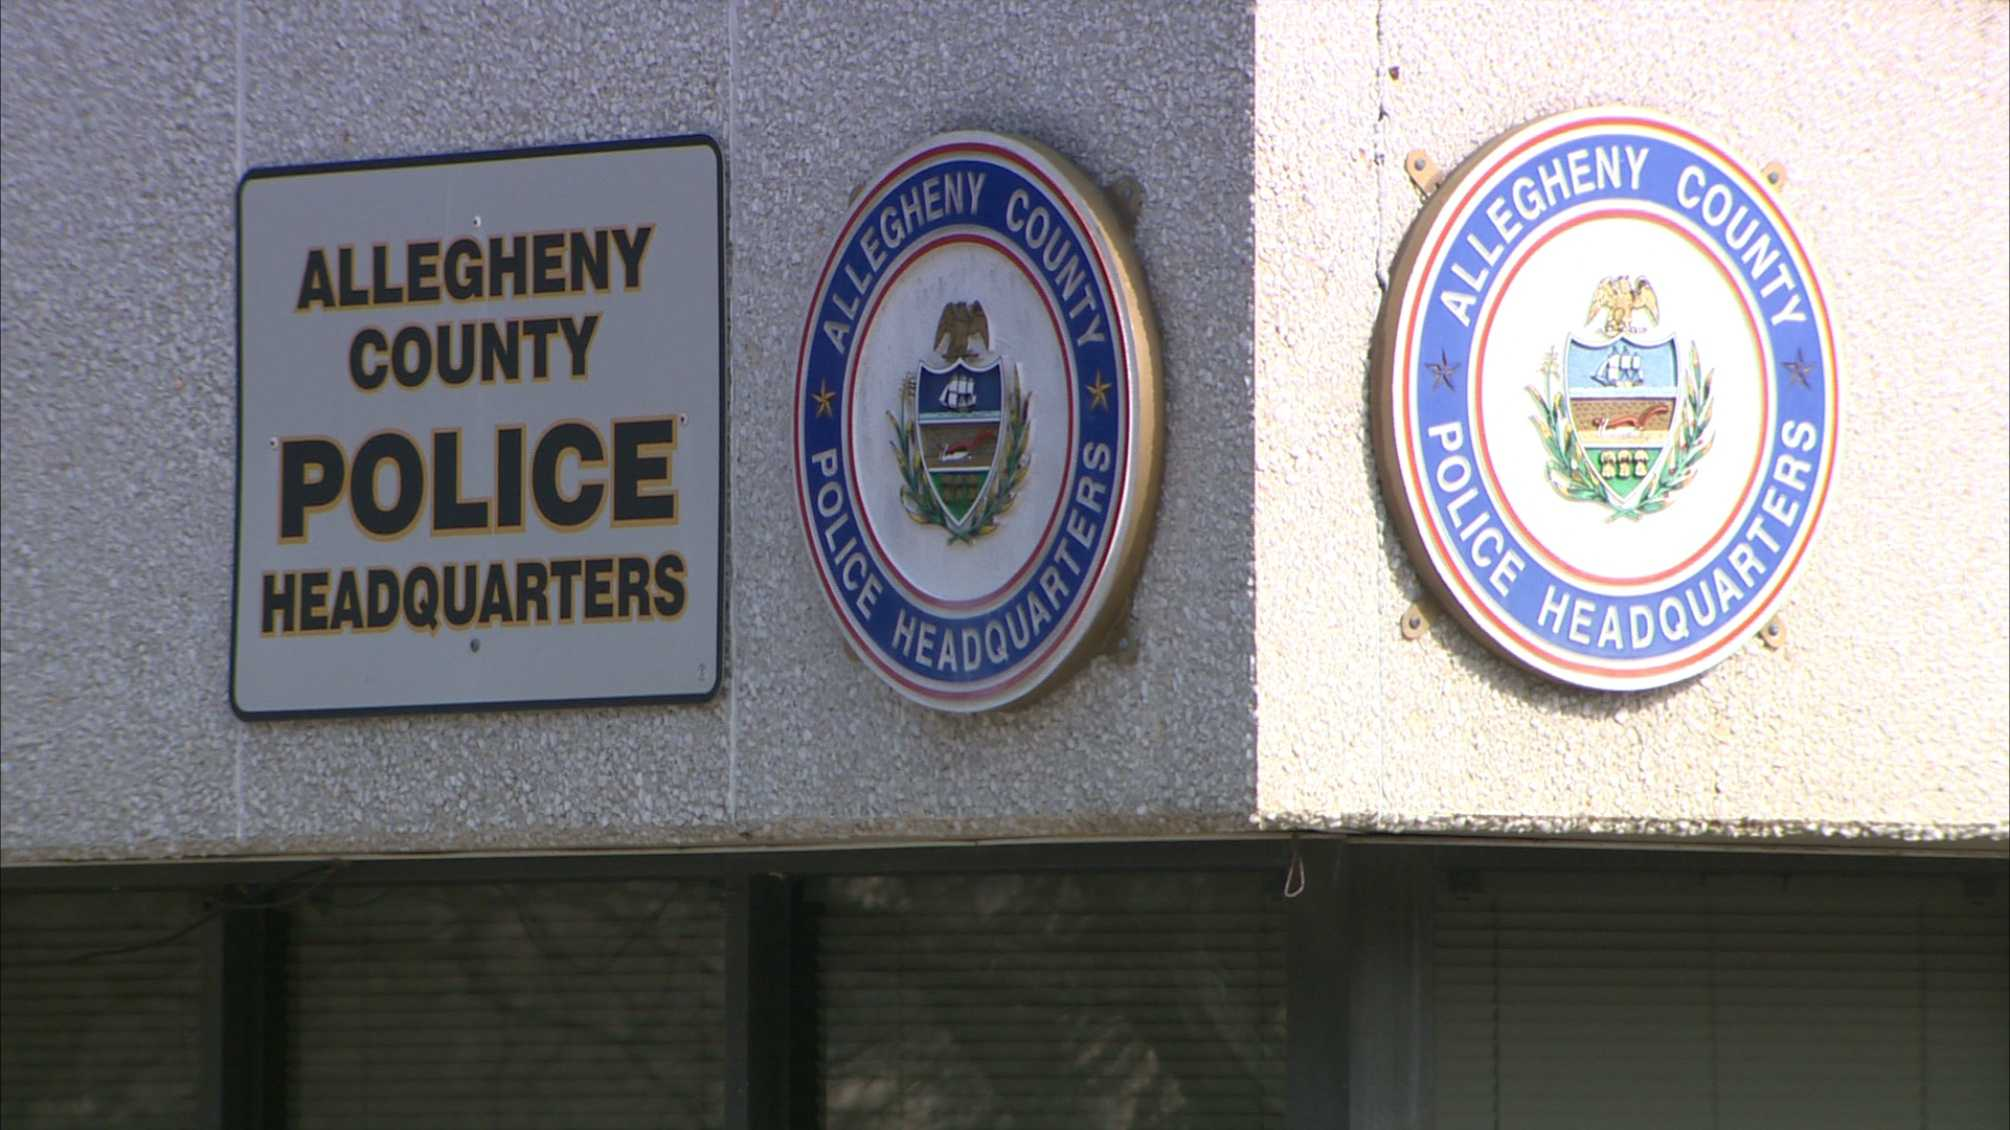 Allegheny County Police Headquarters